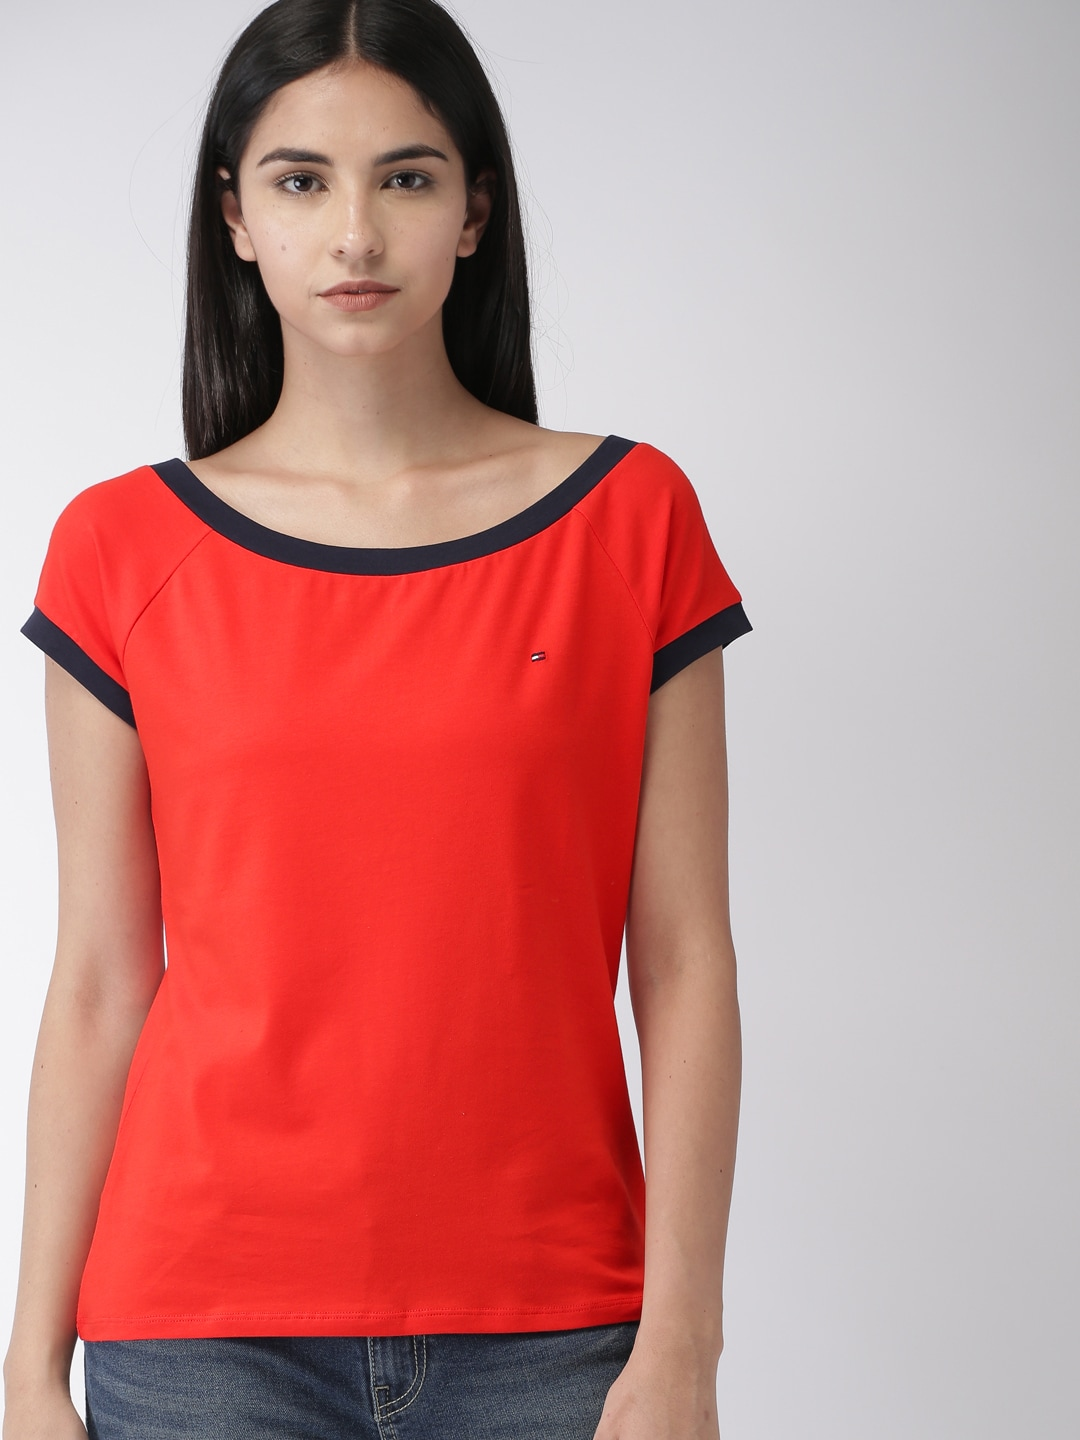 embroidered shirts buy embroidered shirts online in india7764078 Green Shirt Womens #1